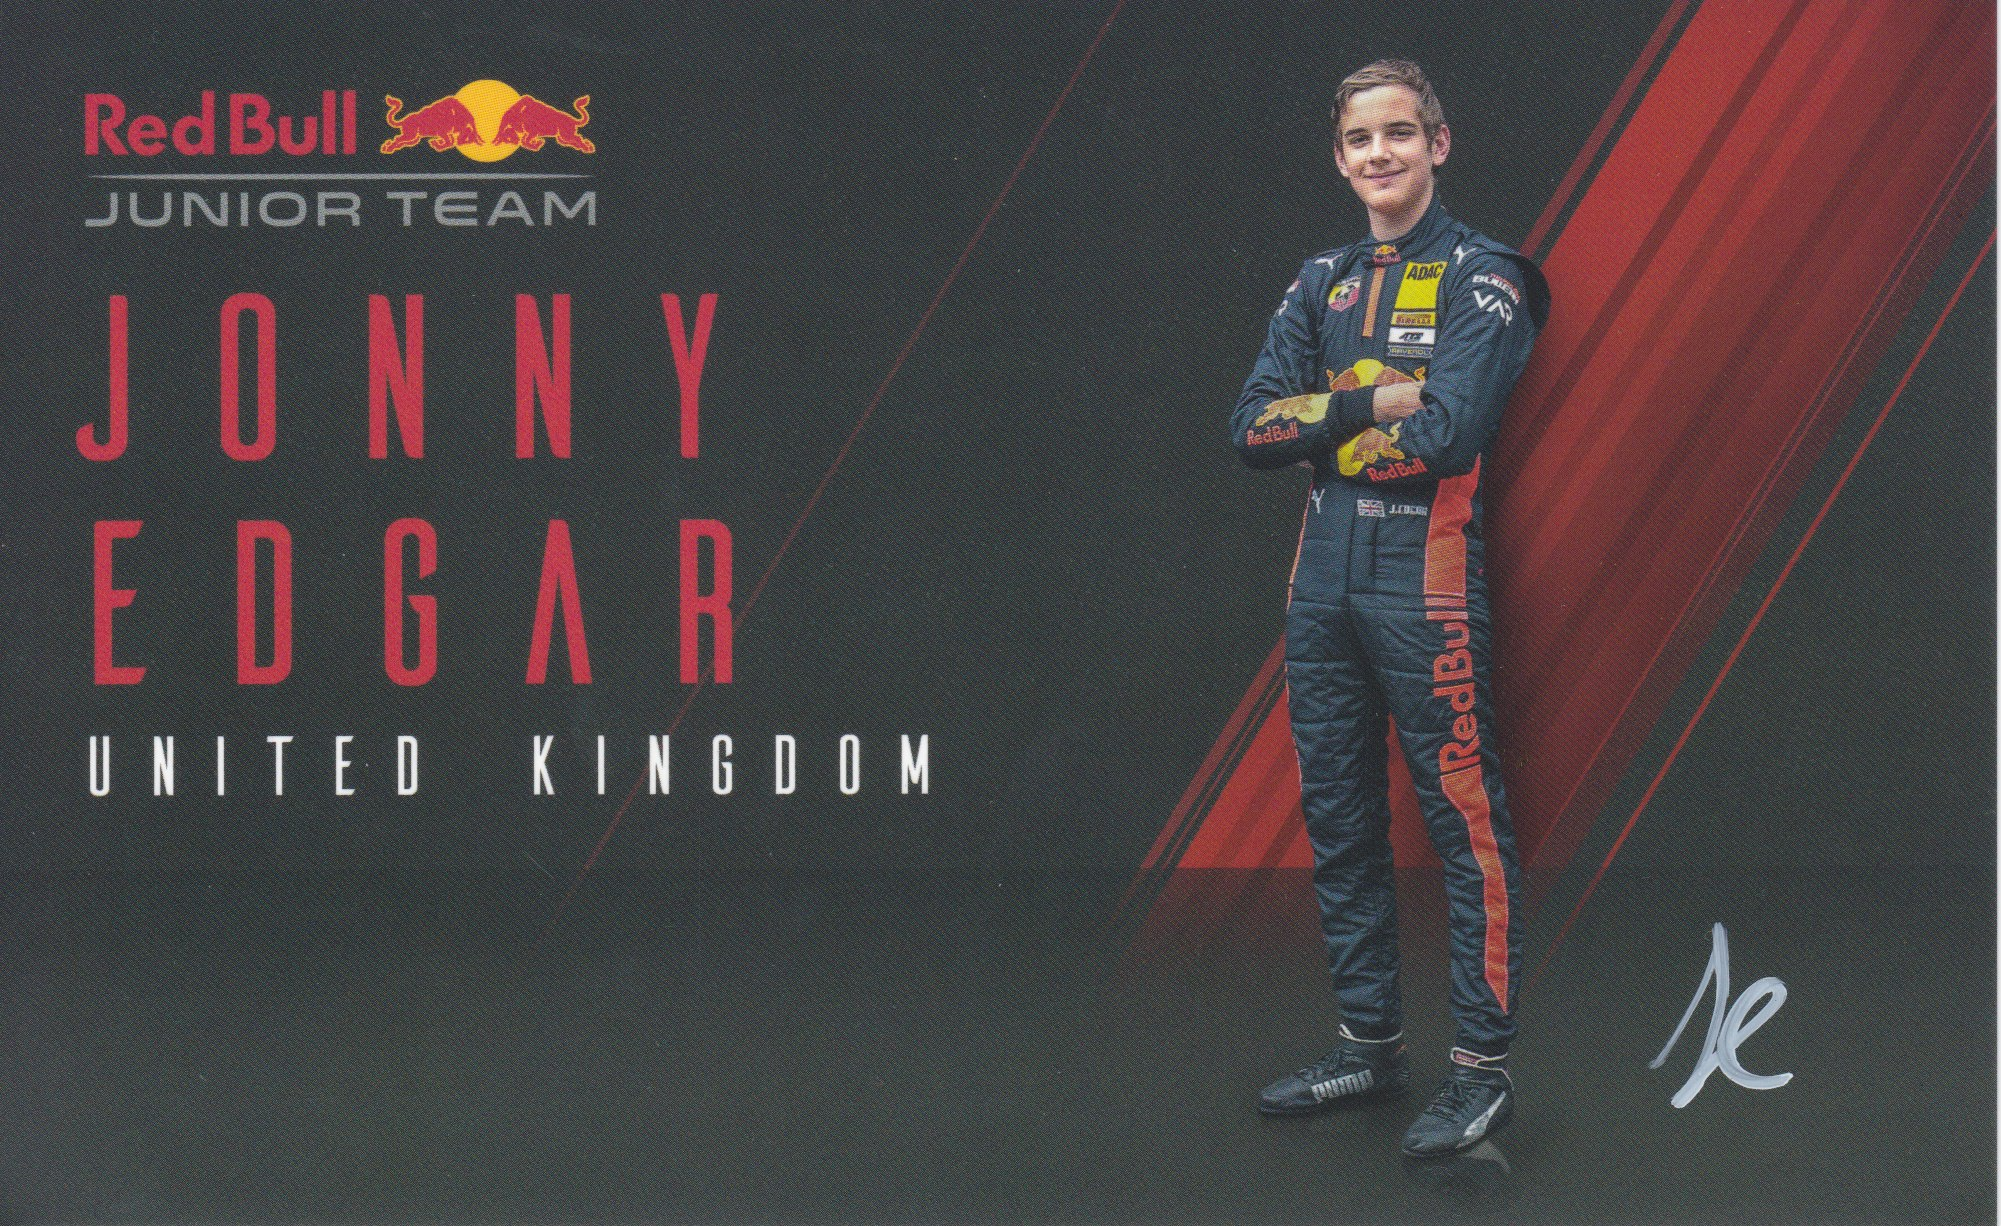 Jonny Edgar Red Bull Junior Team 2020